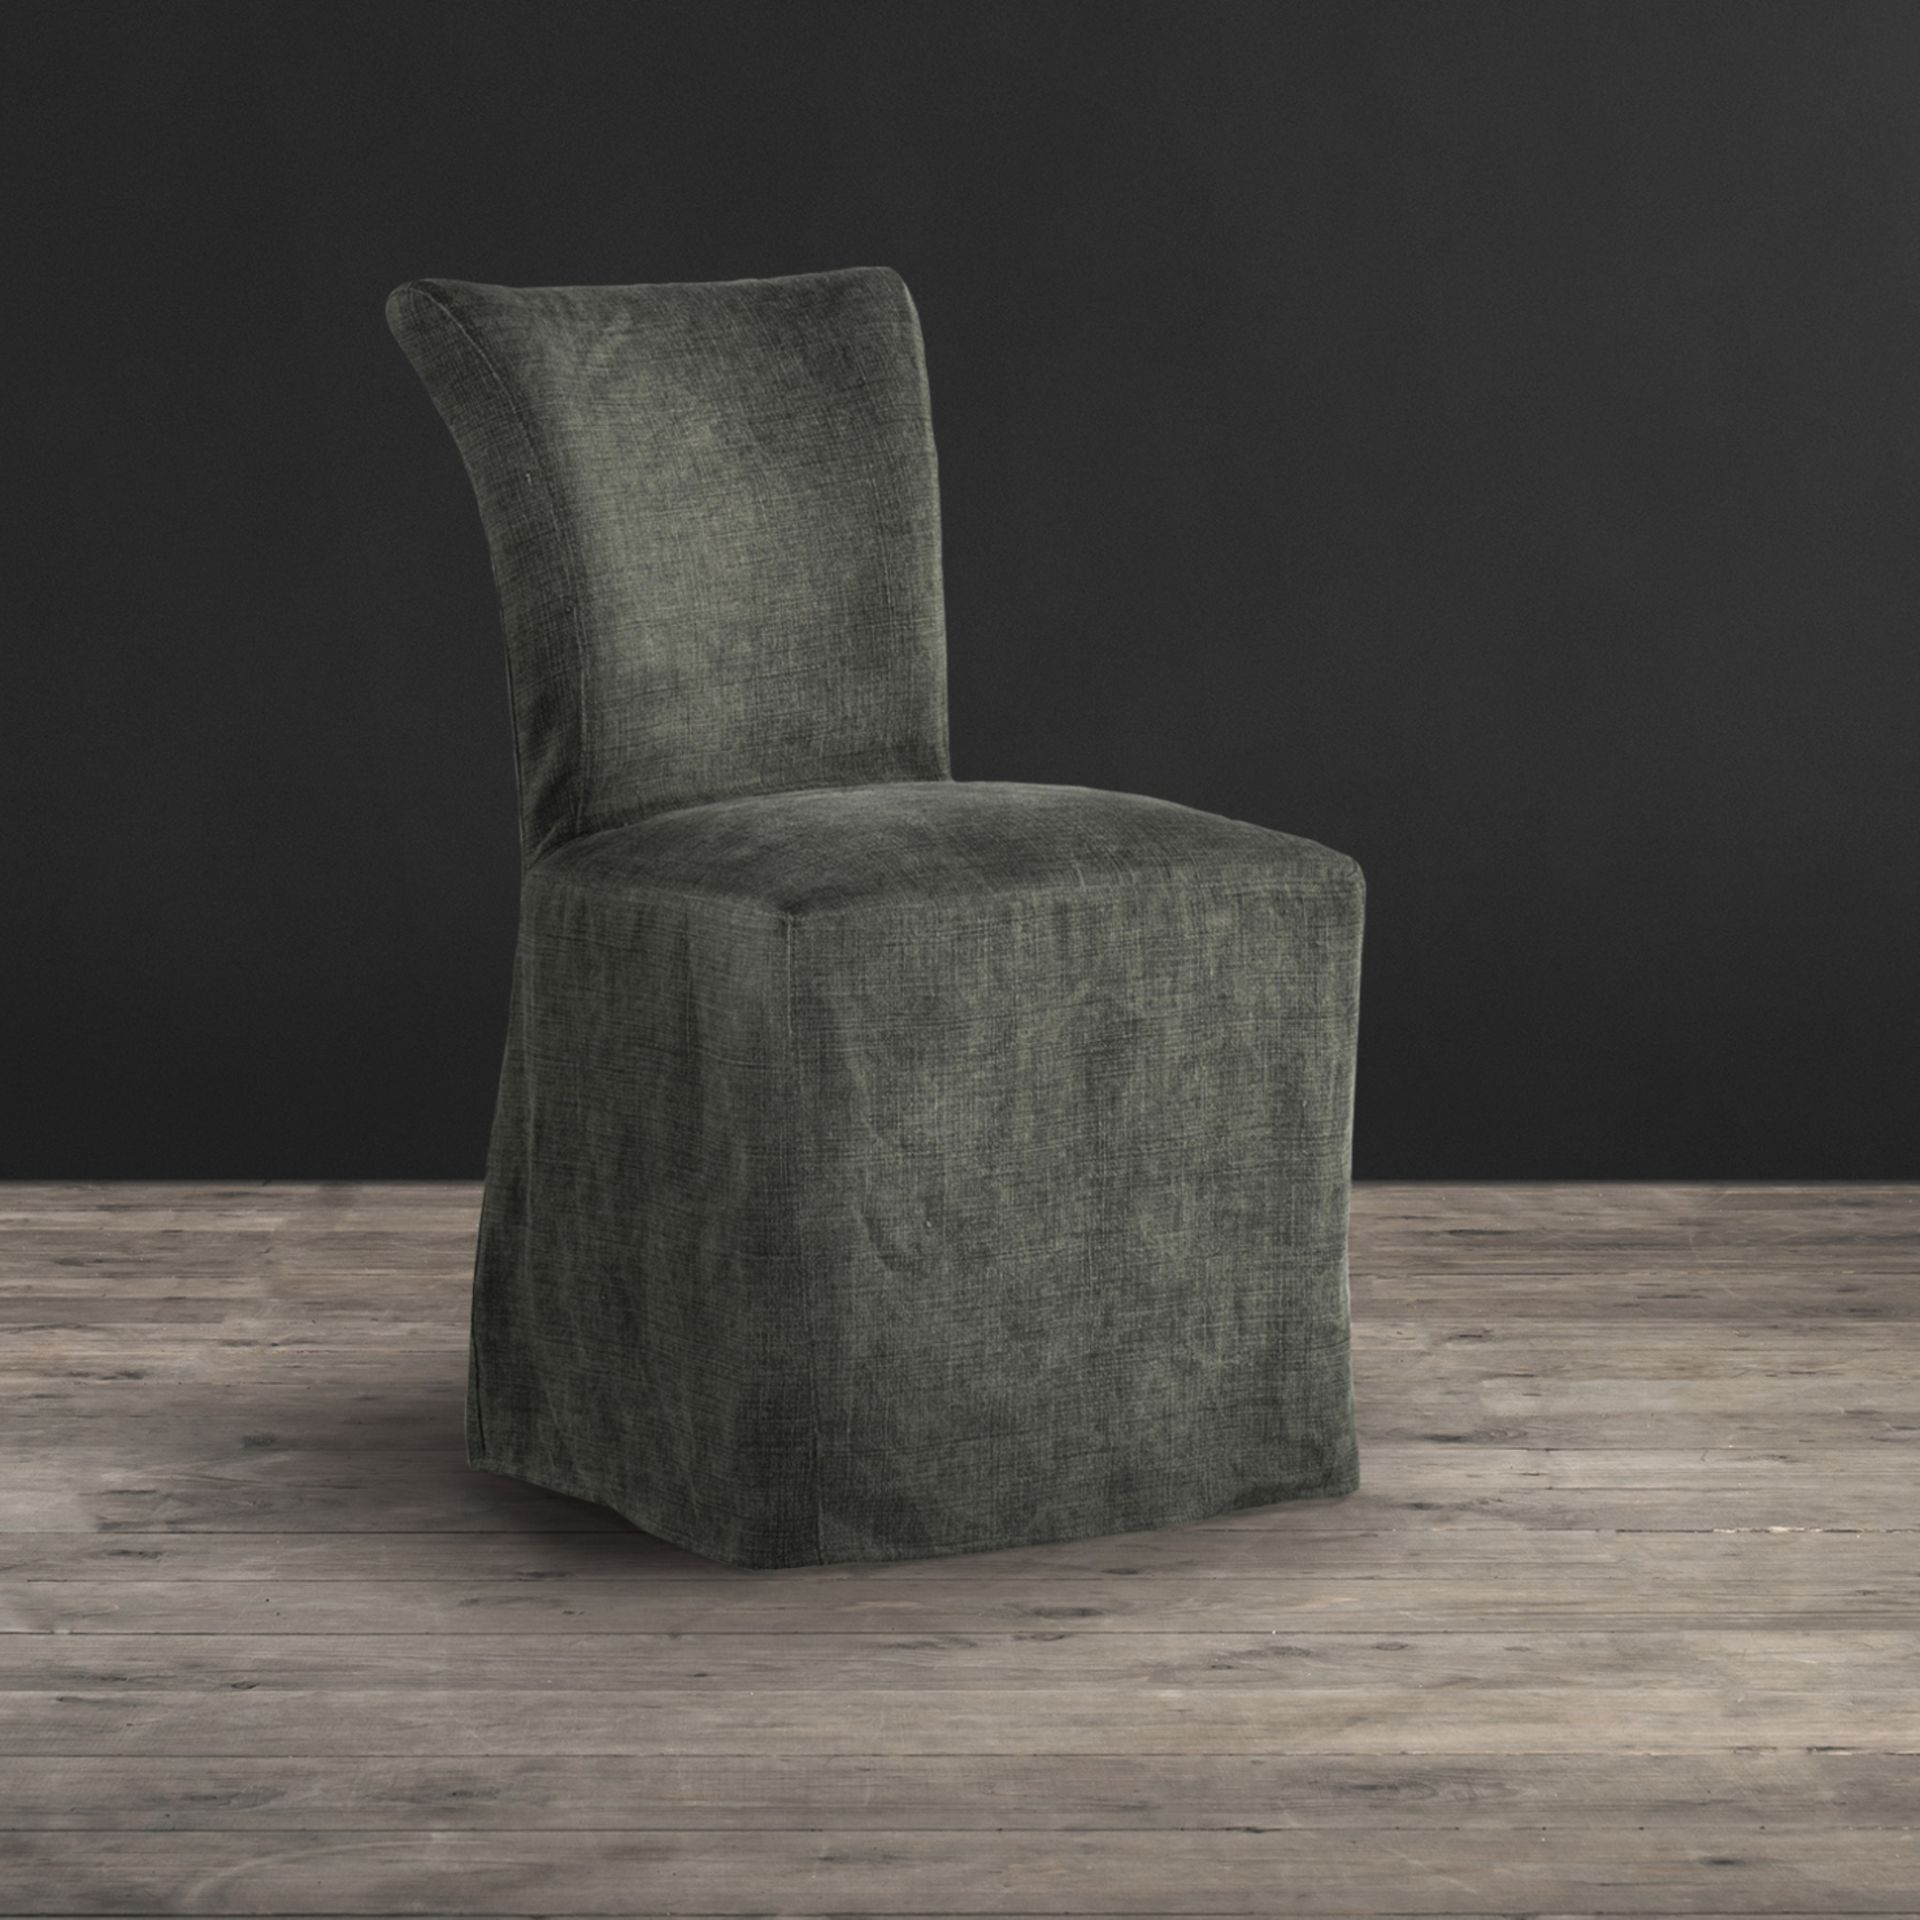 Lot 22 - Mimi Chair Scuff Linen Bone With Loose Cover We've Given Our Best-Selling Mimi Dining Chair A